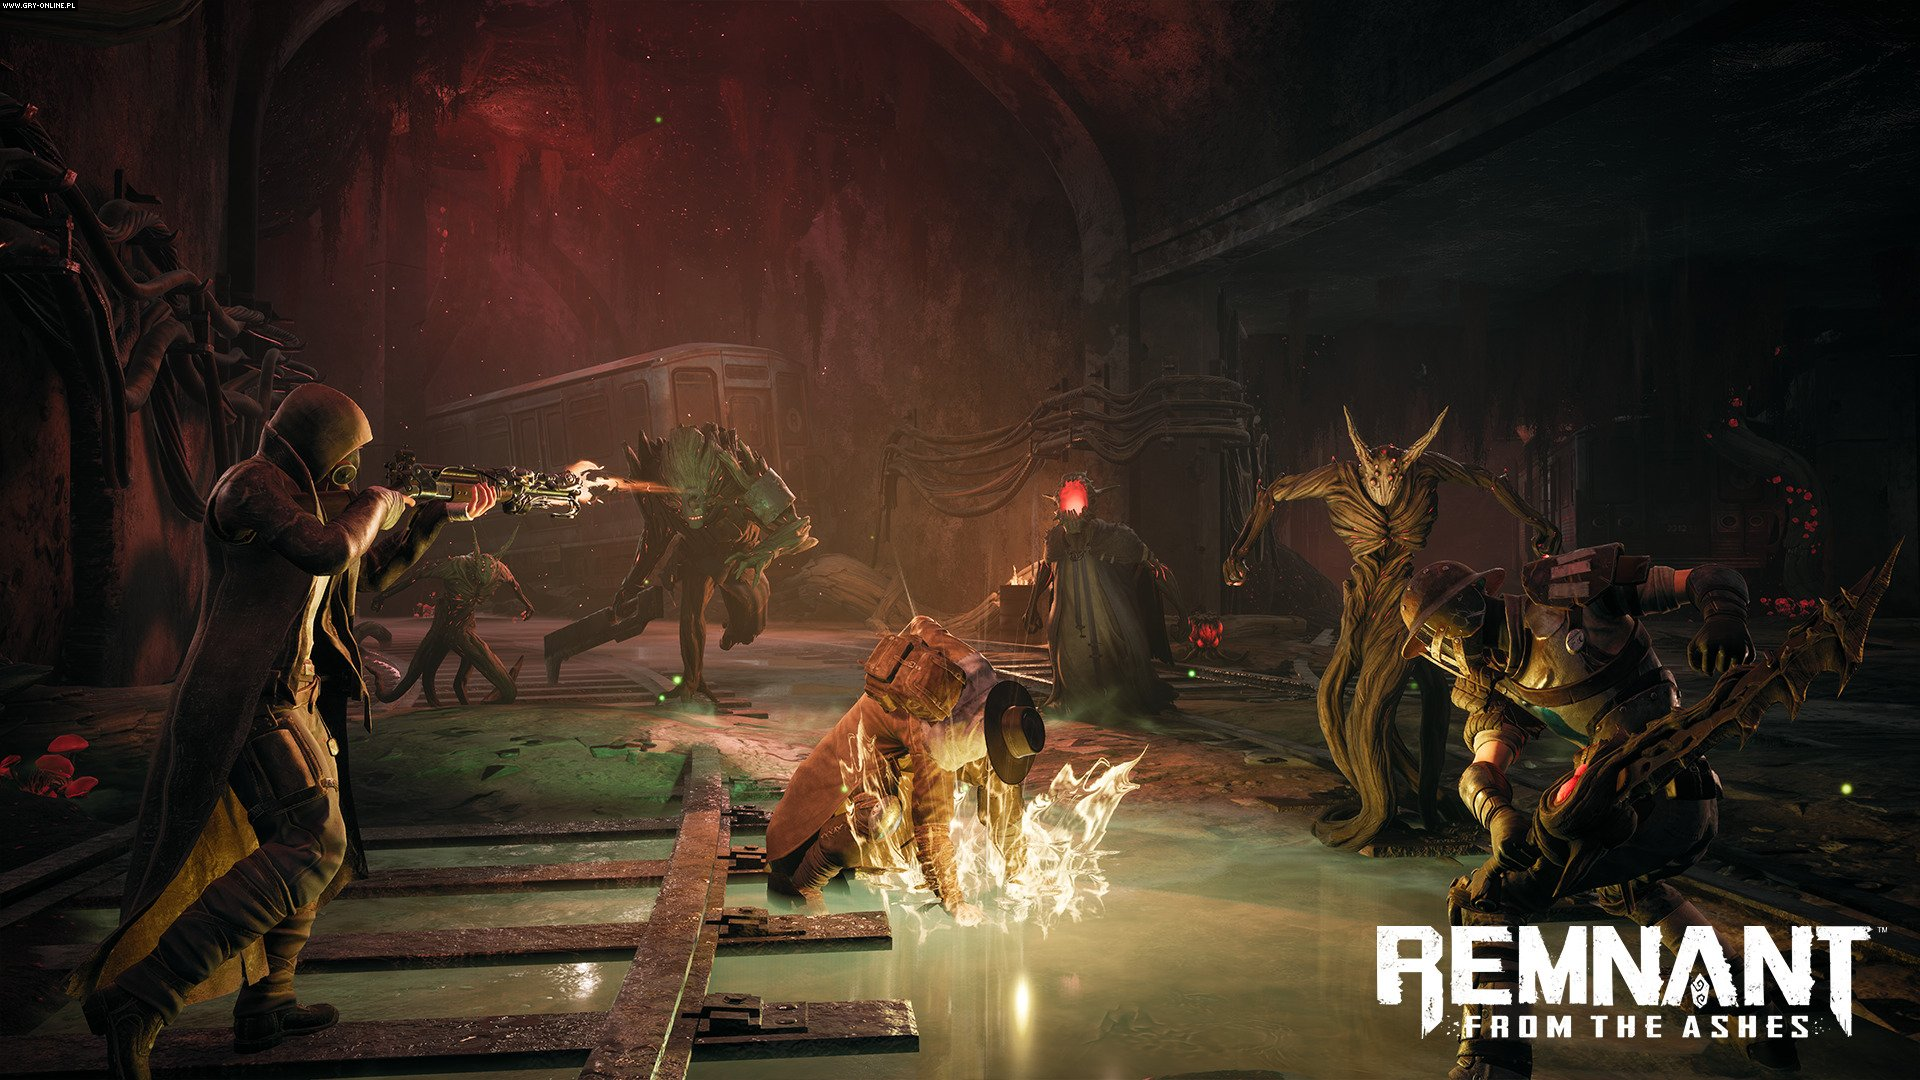 Remnant: From the Ashes PC, PS4, XONE Games Image 3/21, Gunfire Games, Perfect World Entertainment